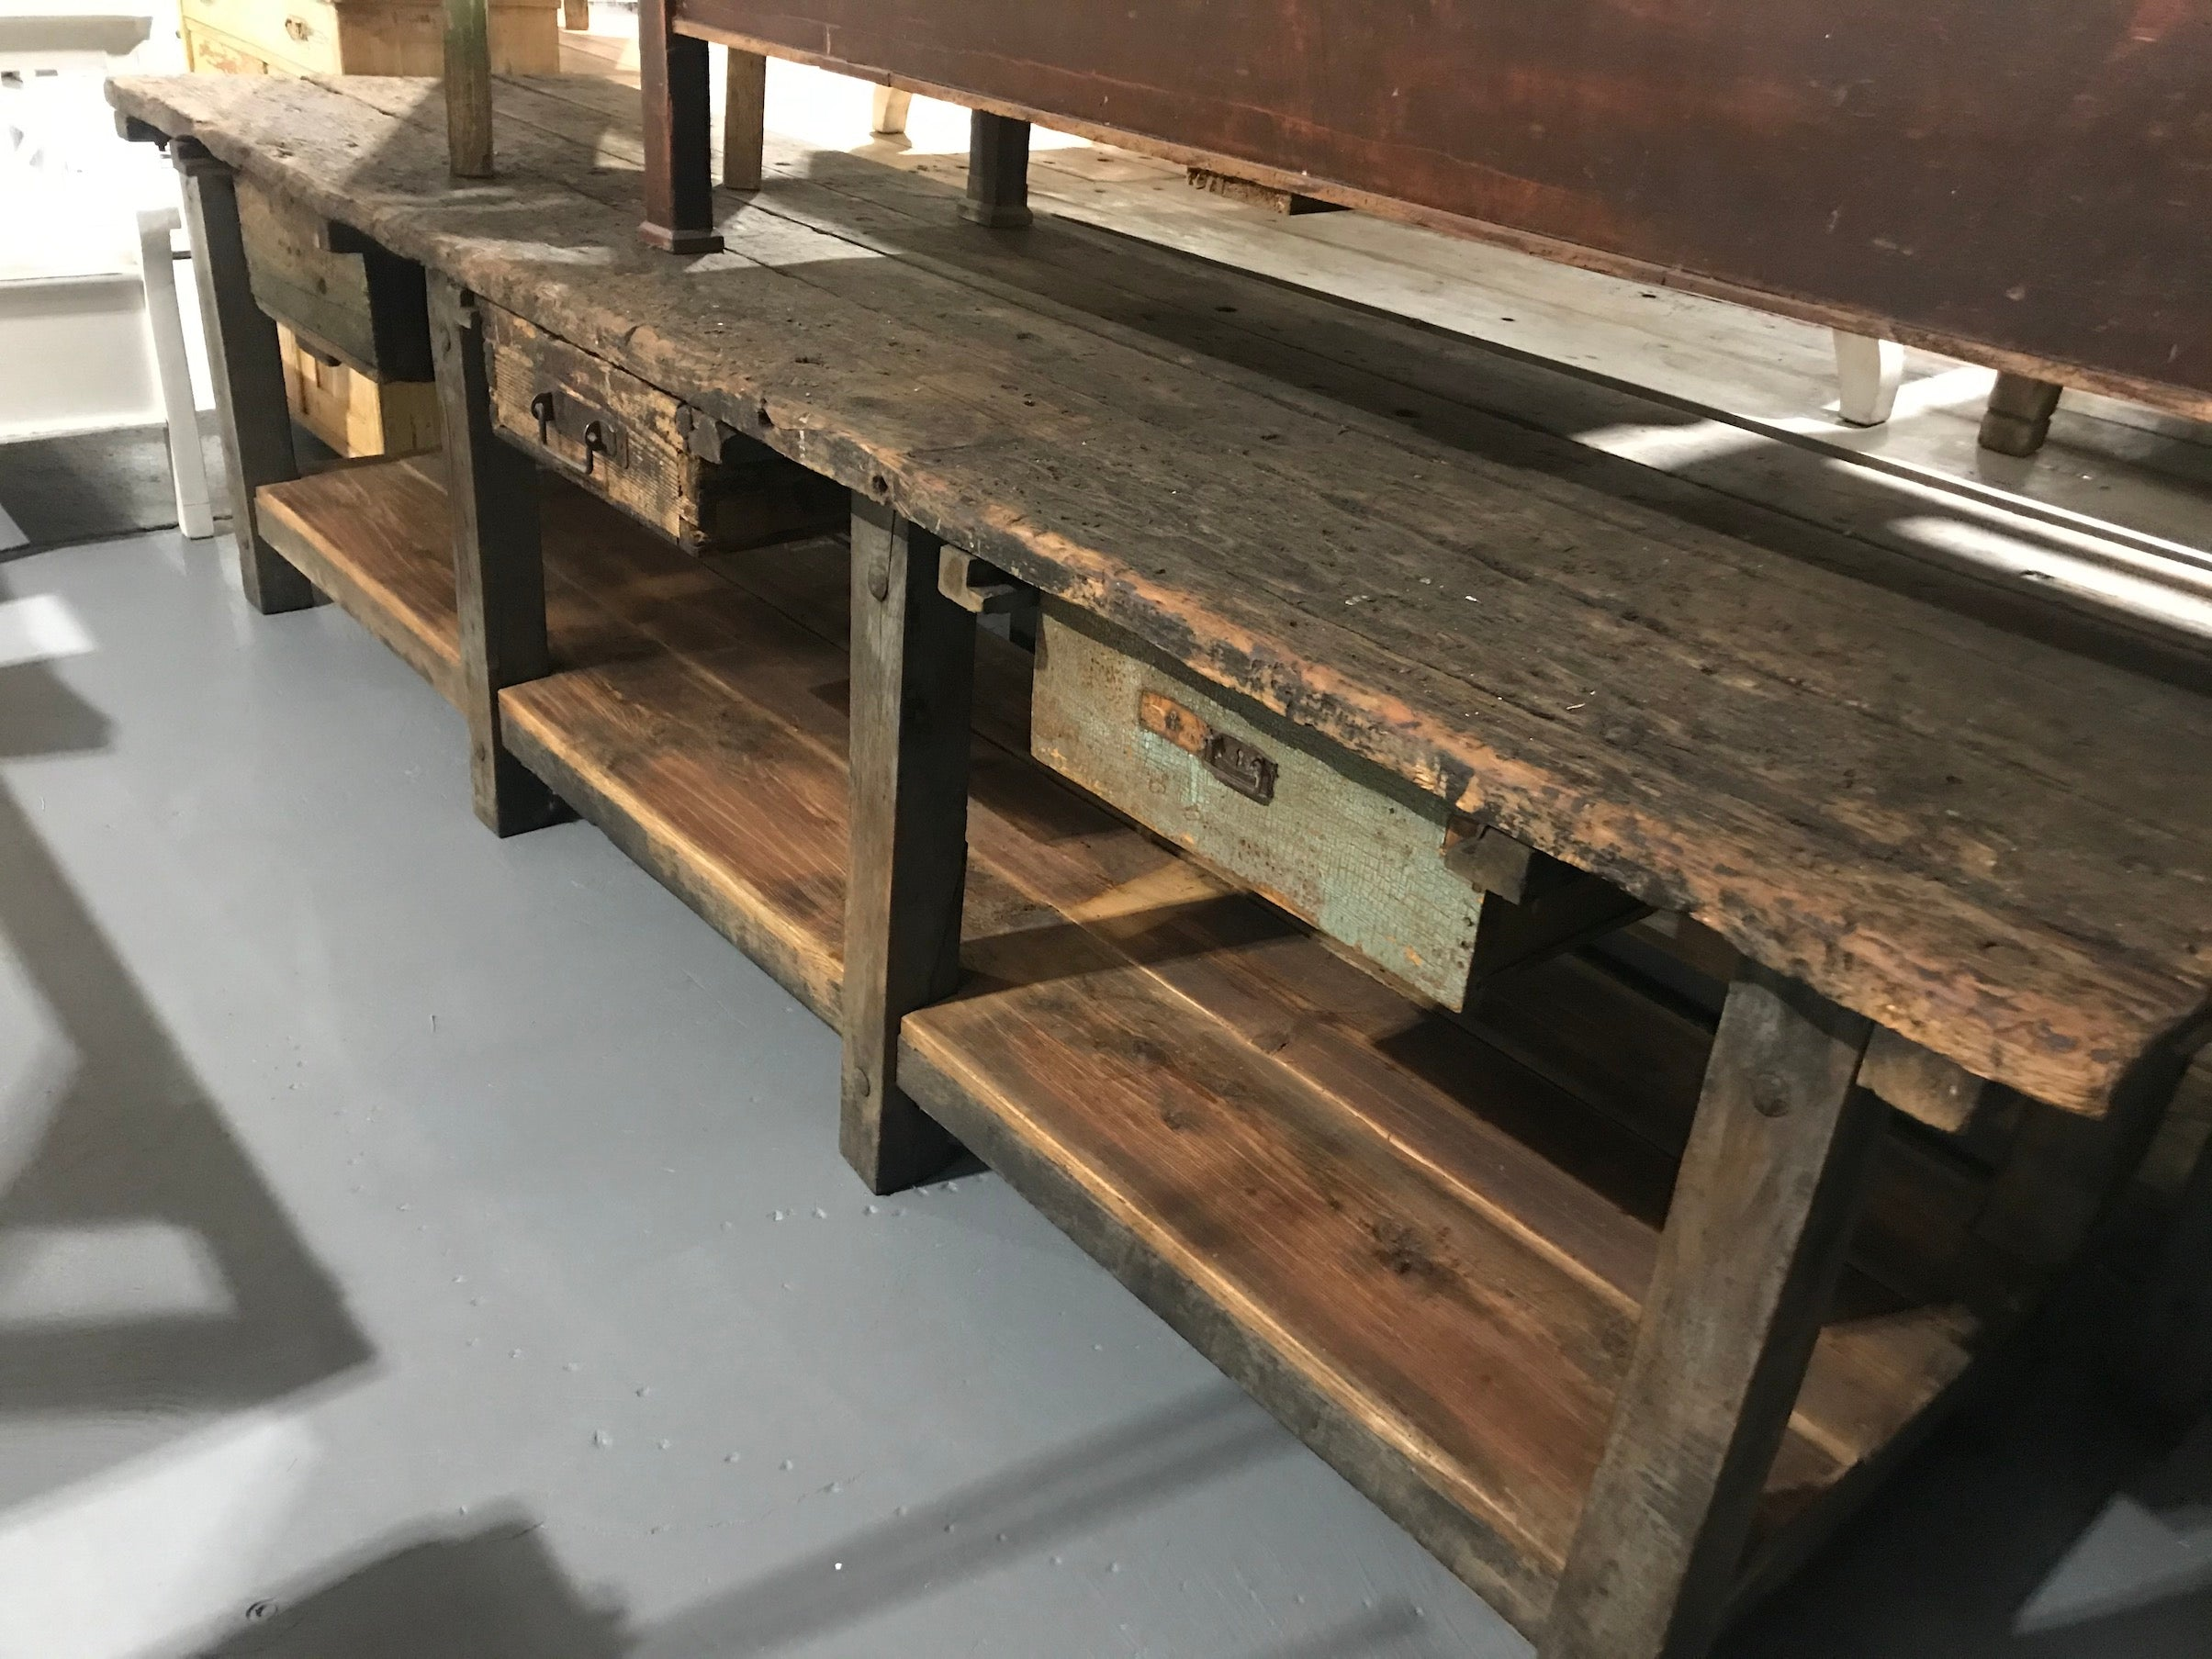 Vintage industrial European workbench table counter kitchen island 3.0 mt #2615